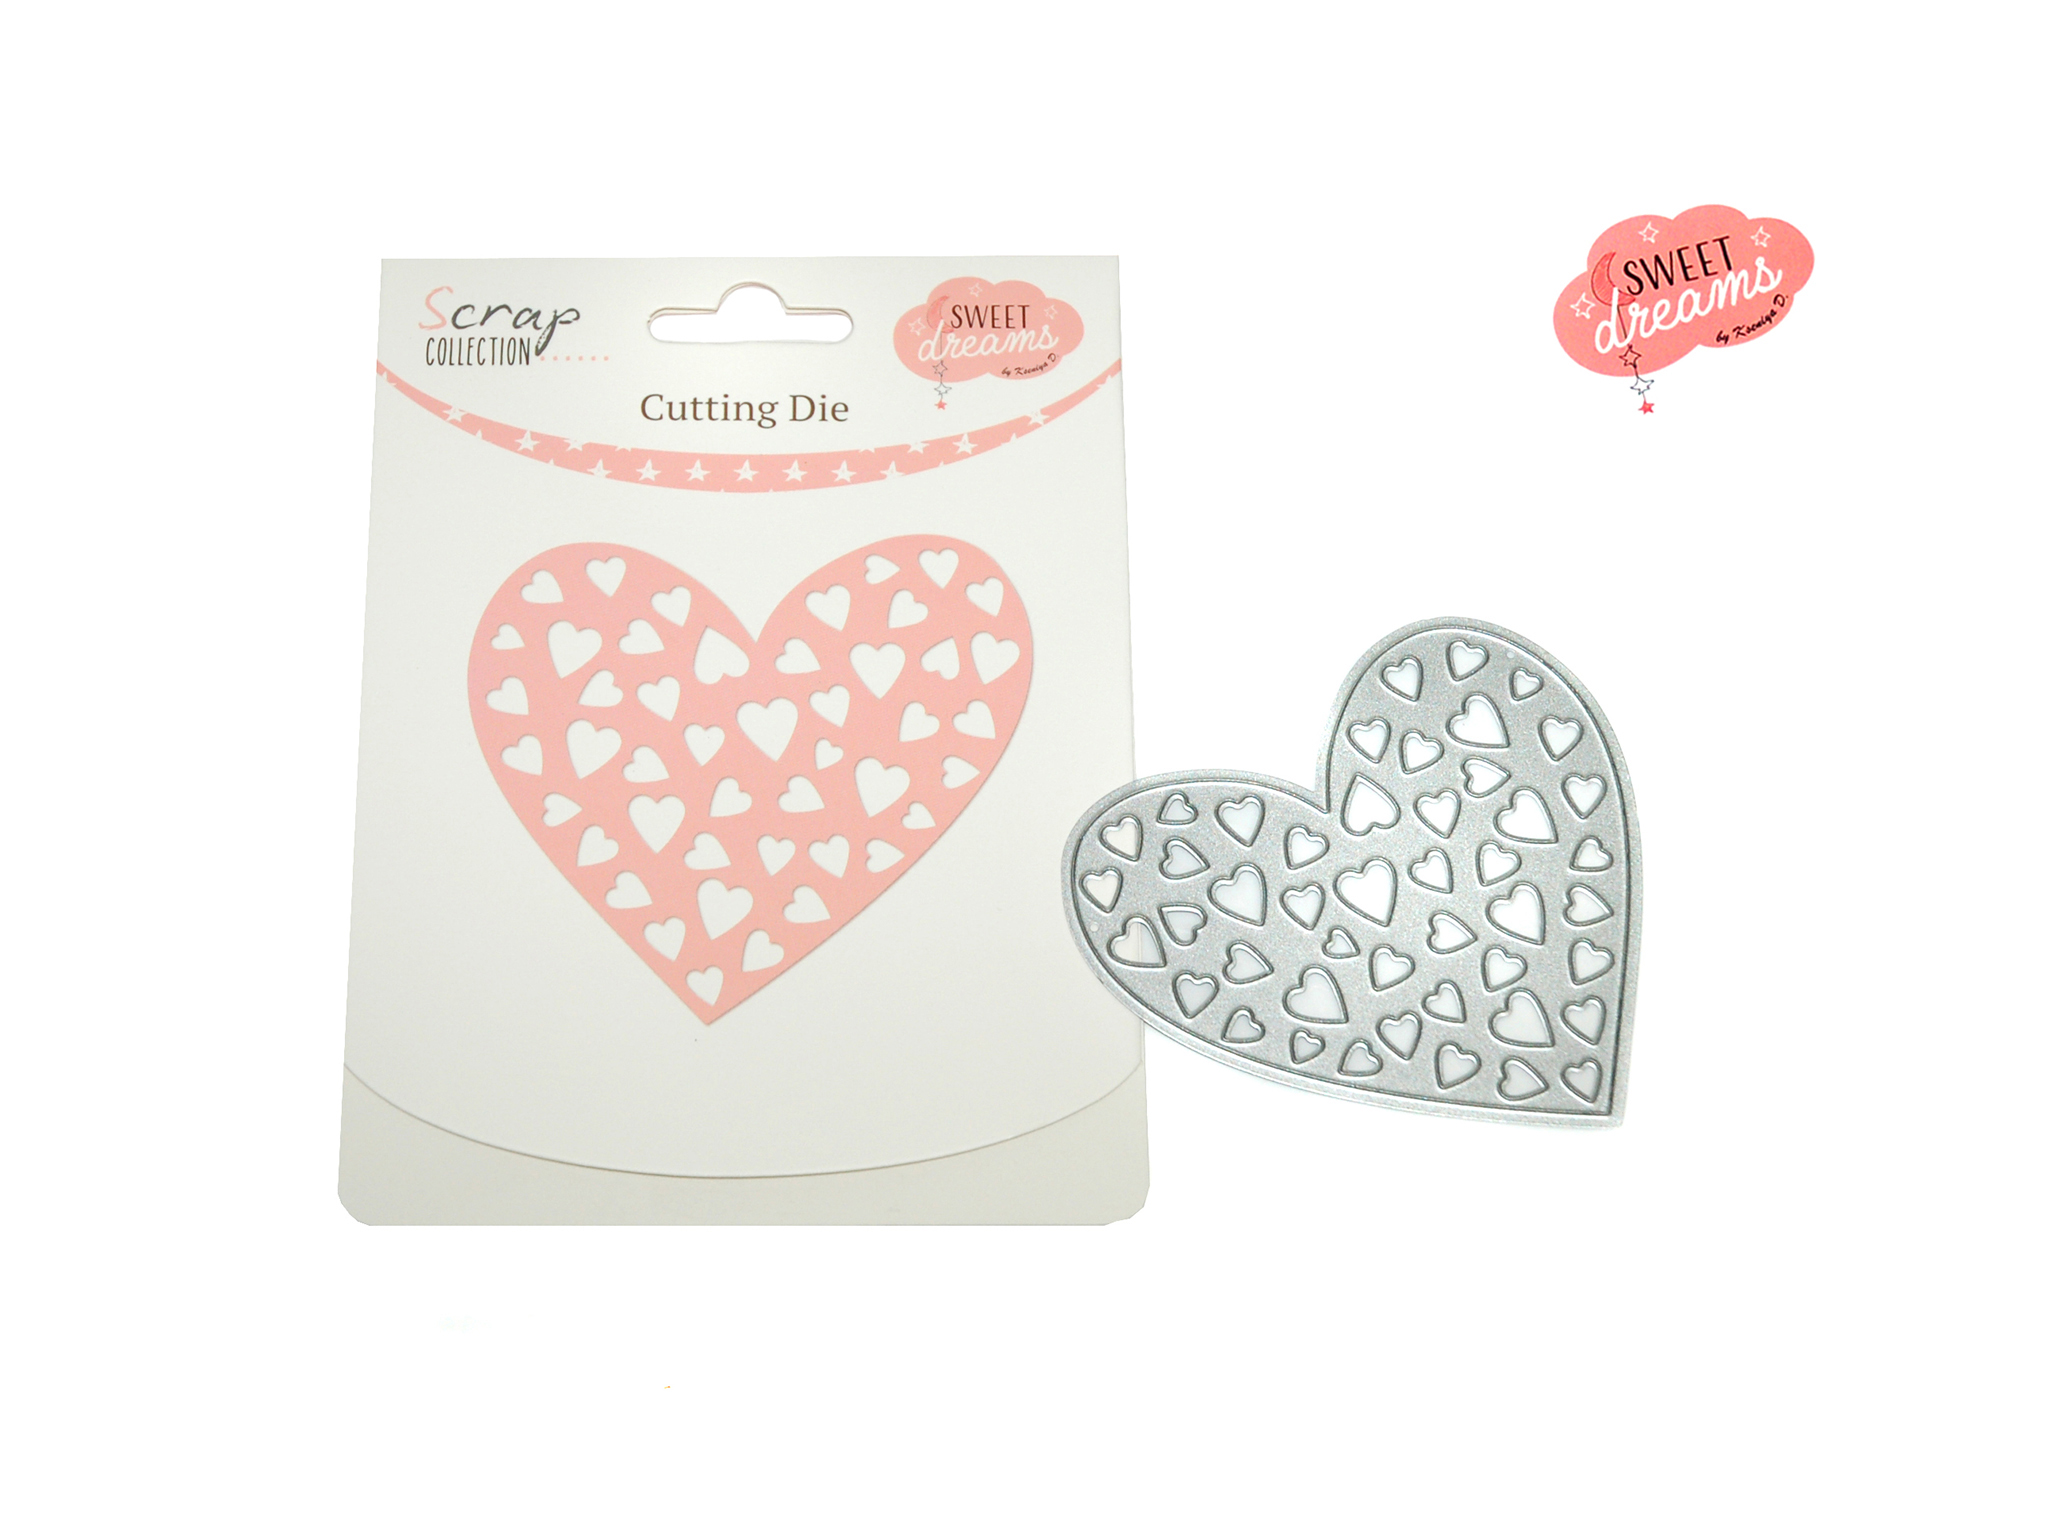 CUTTING DIE CORAZON SWEET DREAMS GIRL cod. 2501802